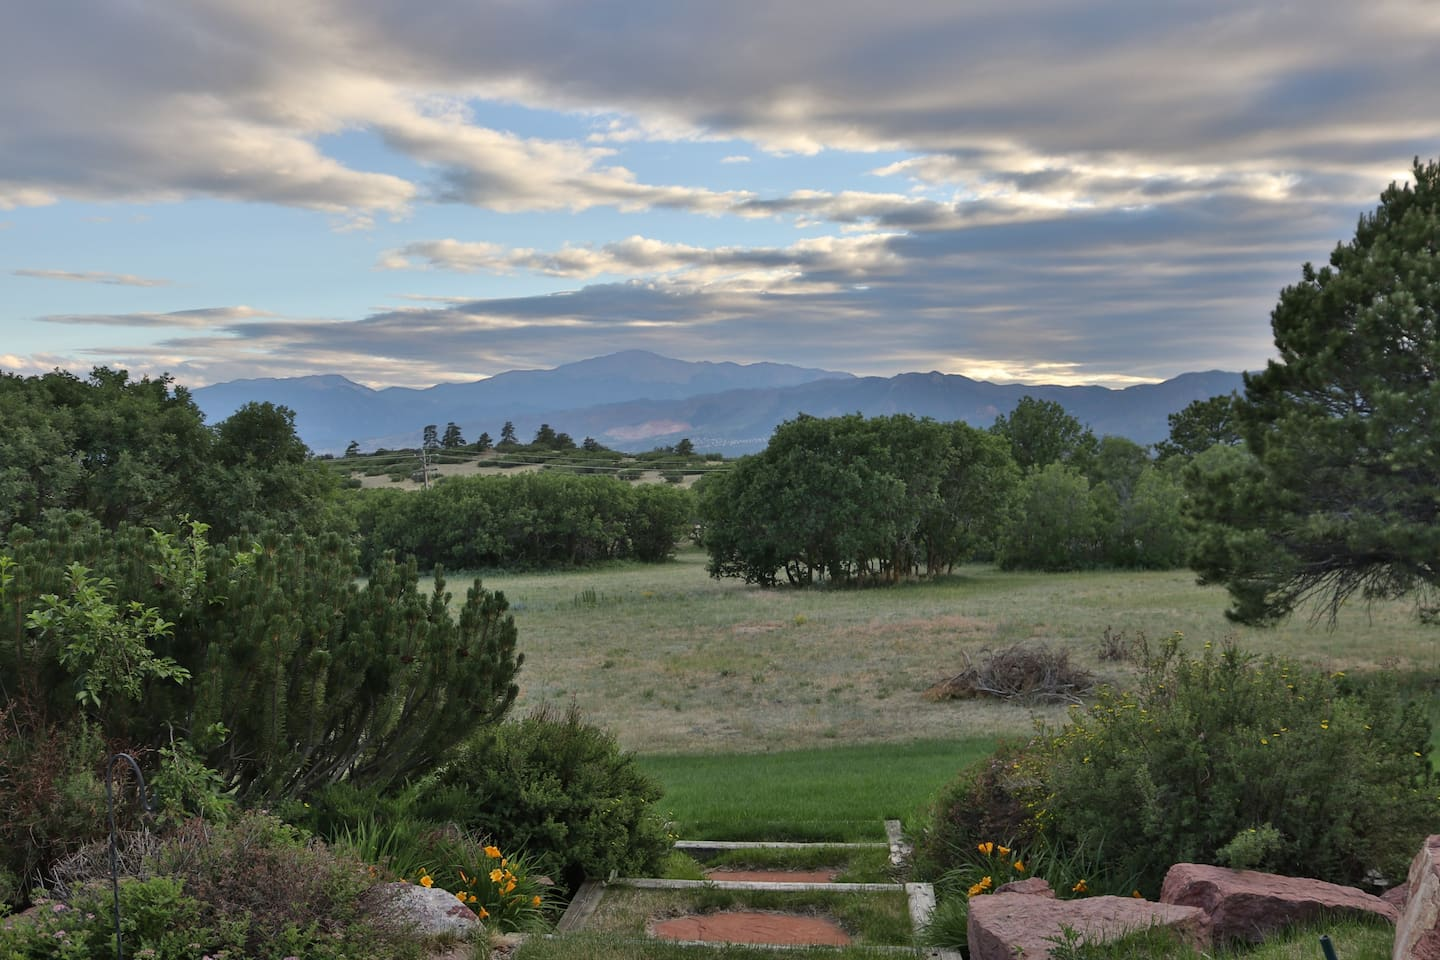 Pikes Peak from our backyard - even better in person :)